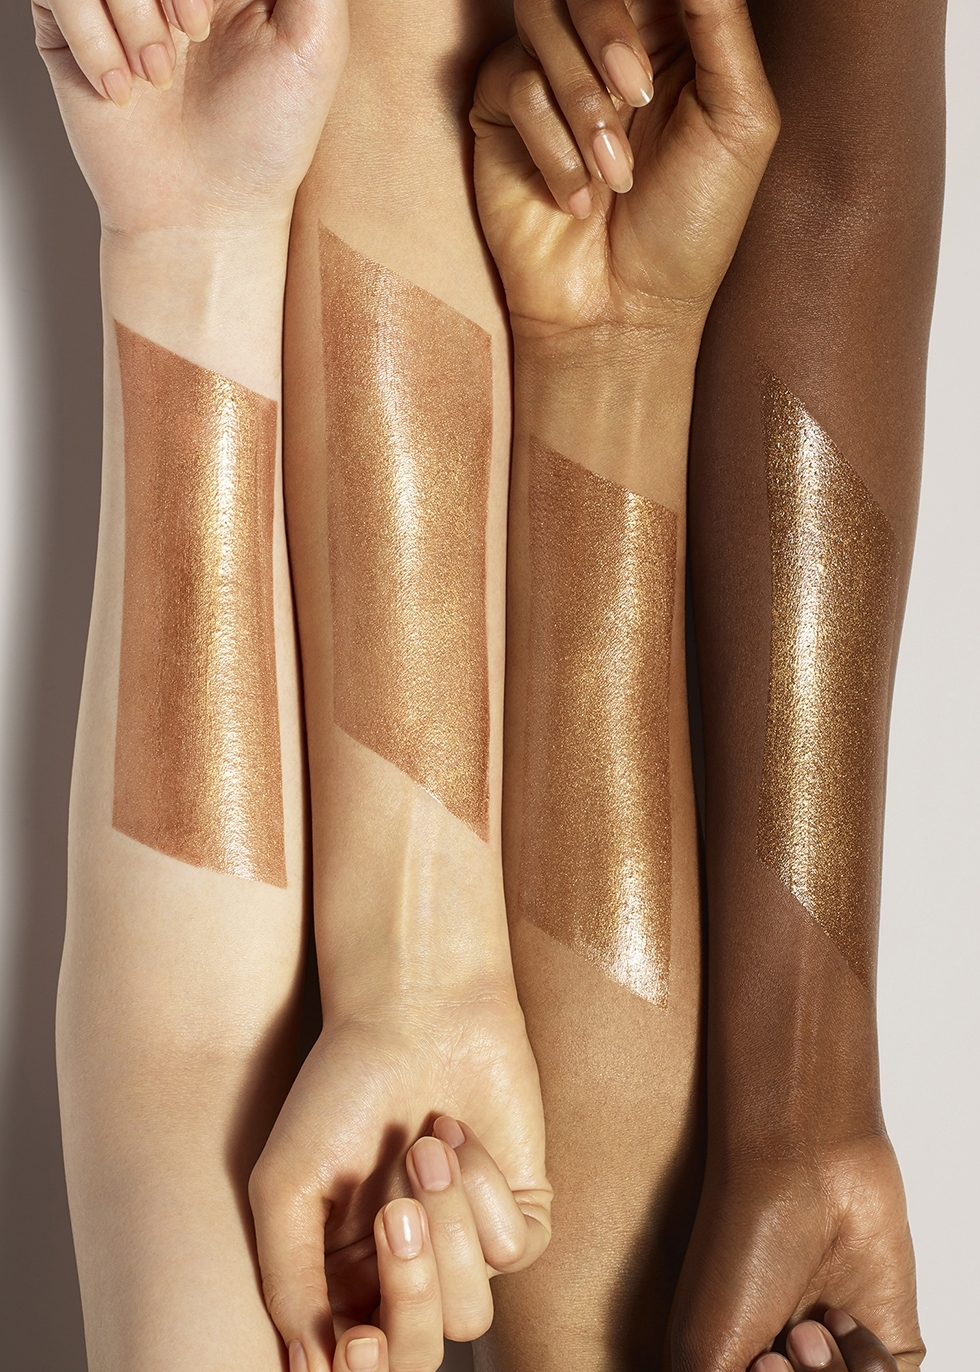 fenty-beauty-body-luminizer-swatch